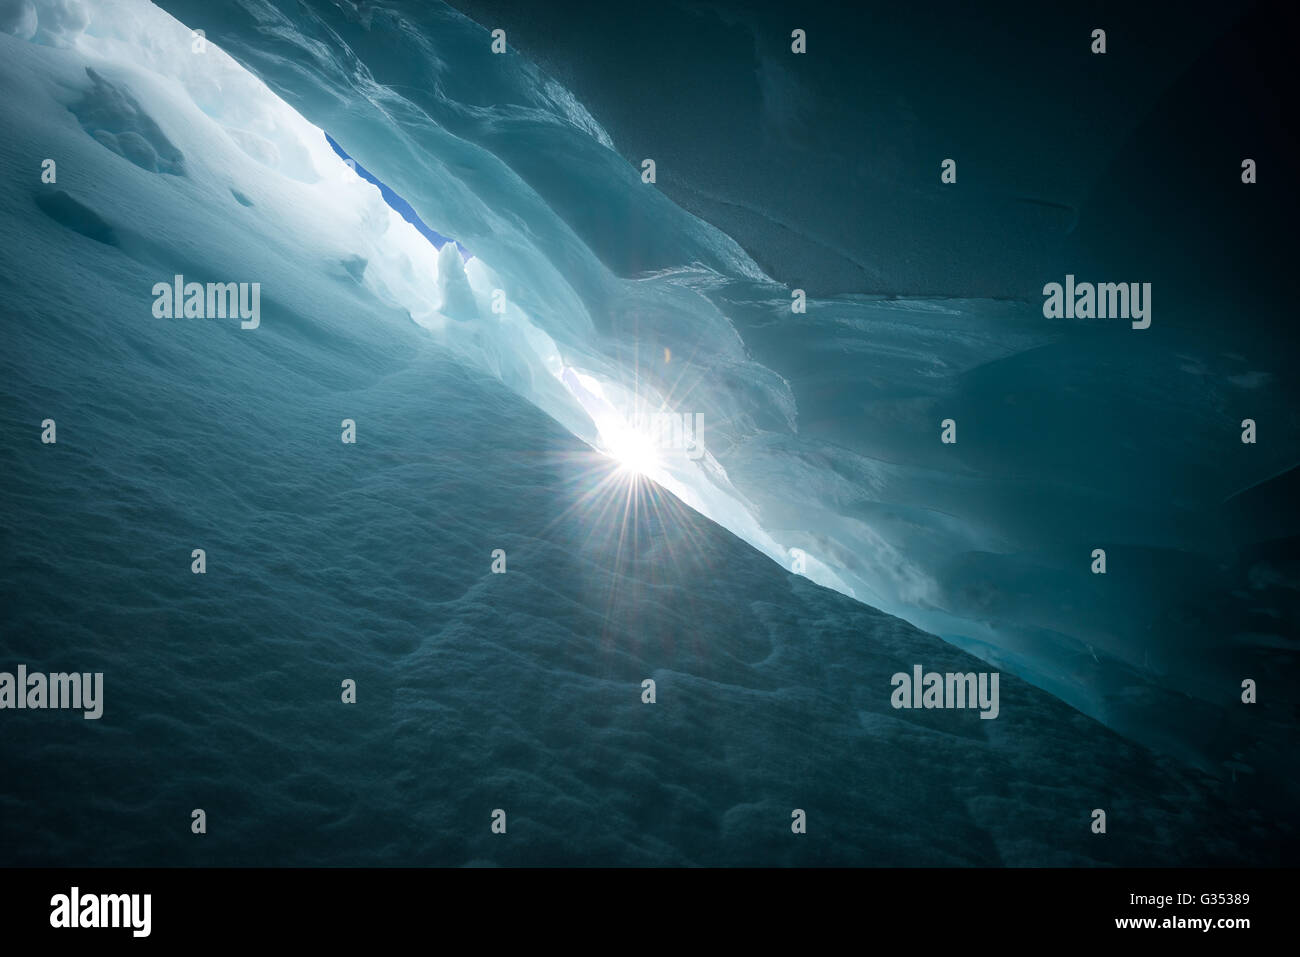 Sun star from deep within a Crevasse on Blackcomb glacier Stock Photo